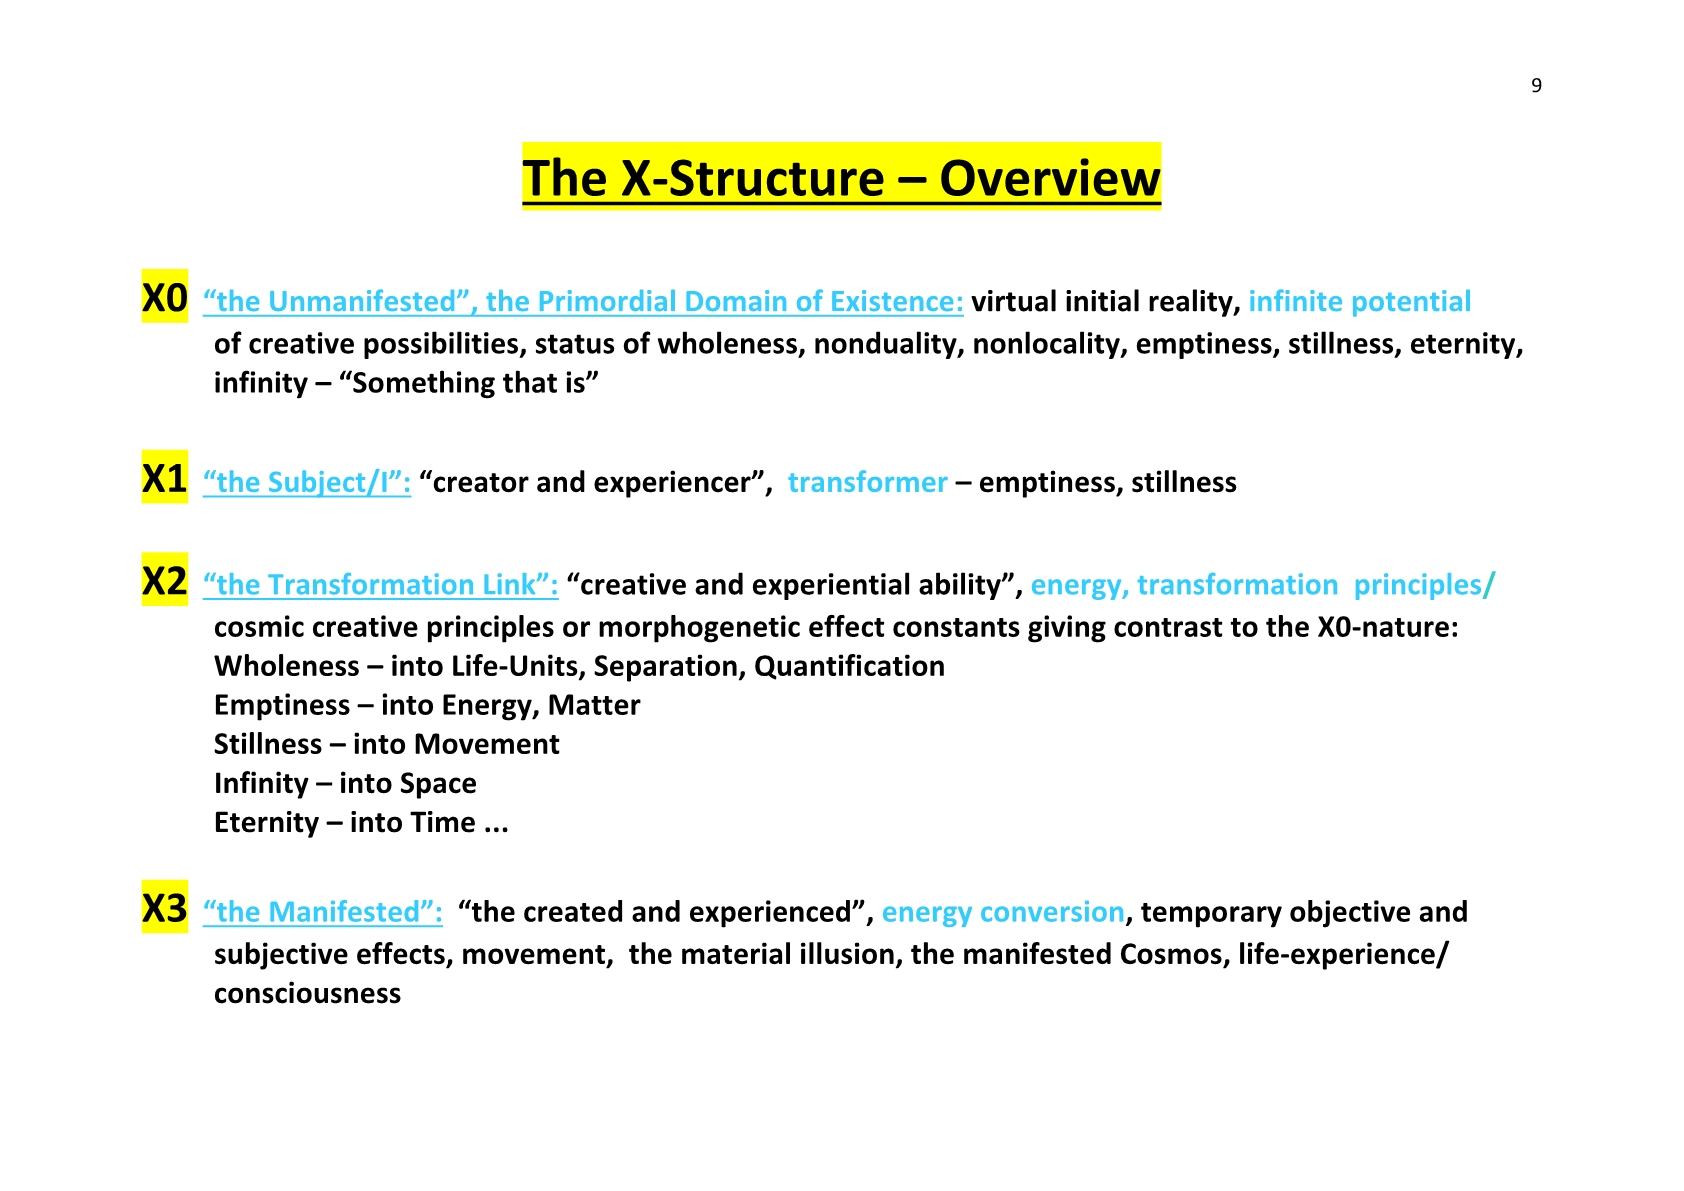 TSC 2014 9 The X-Structure-Overview - NCP X-AIONS